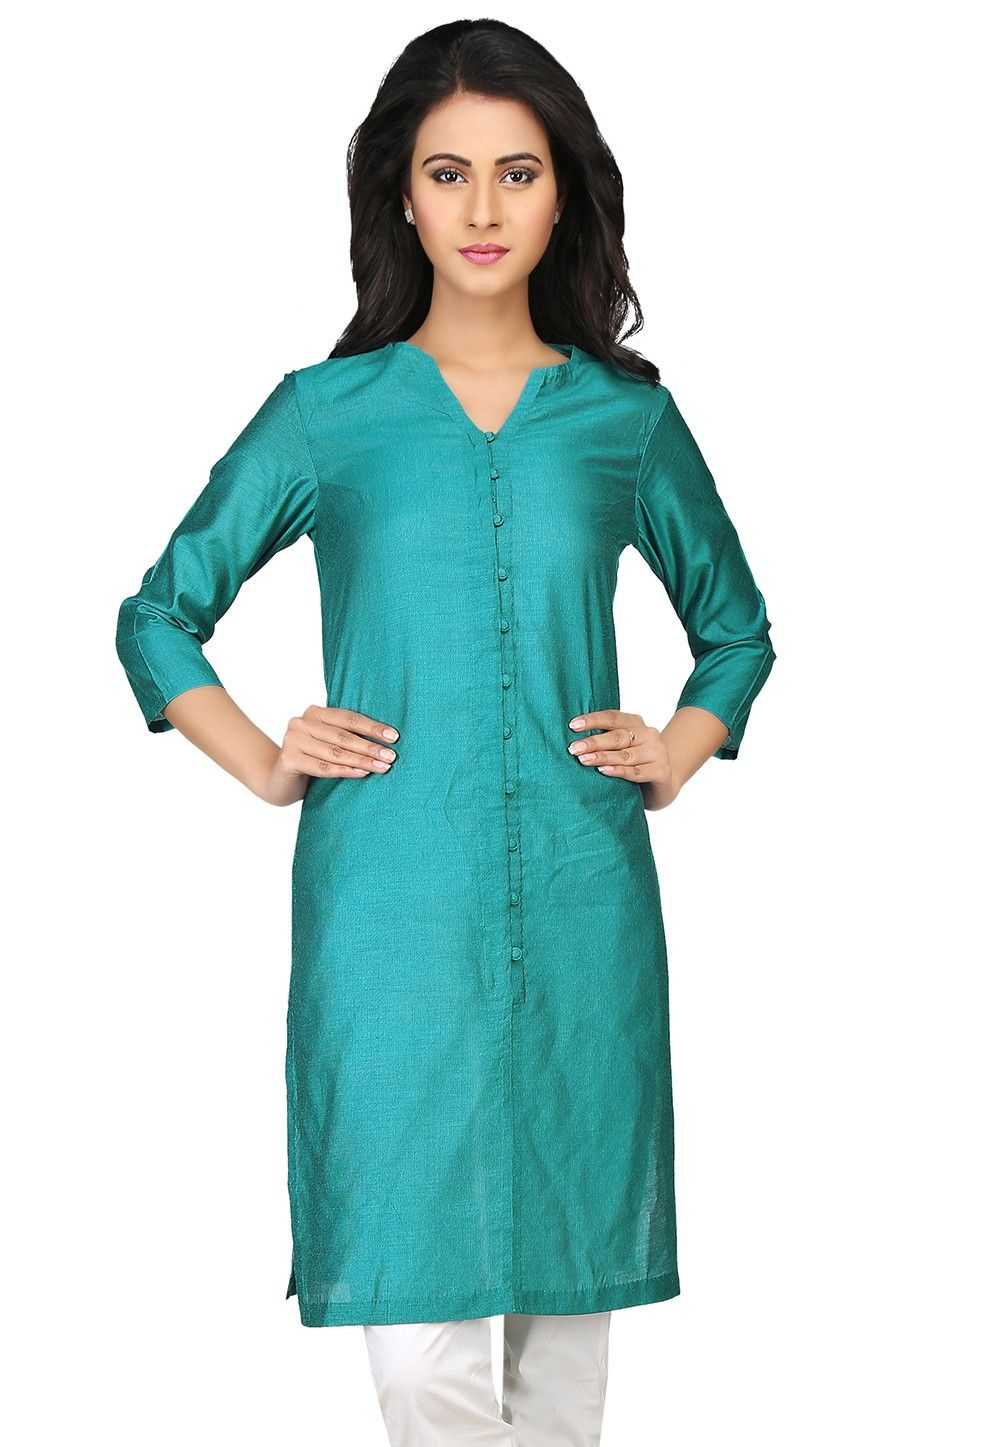 Plain Cotton Viscose Kurta in Teal Blue